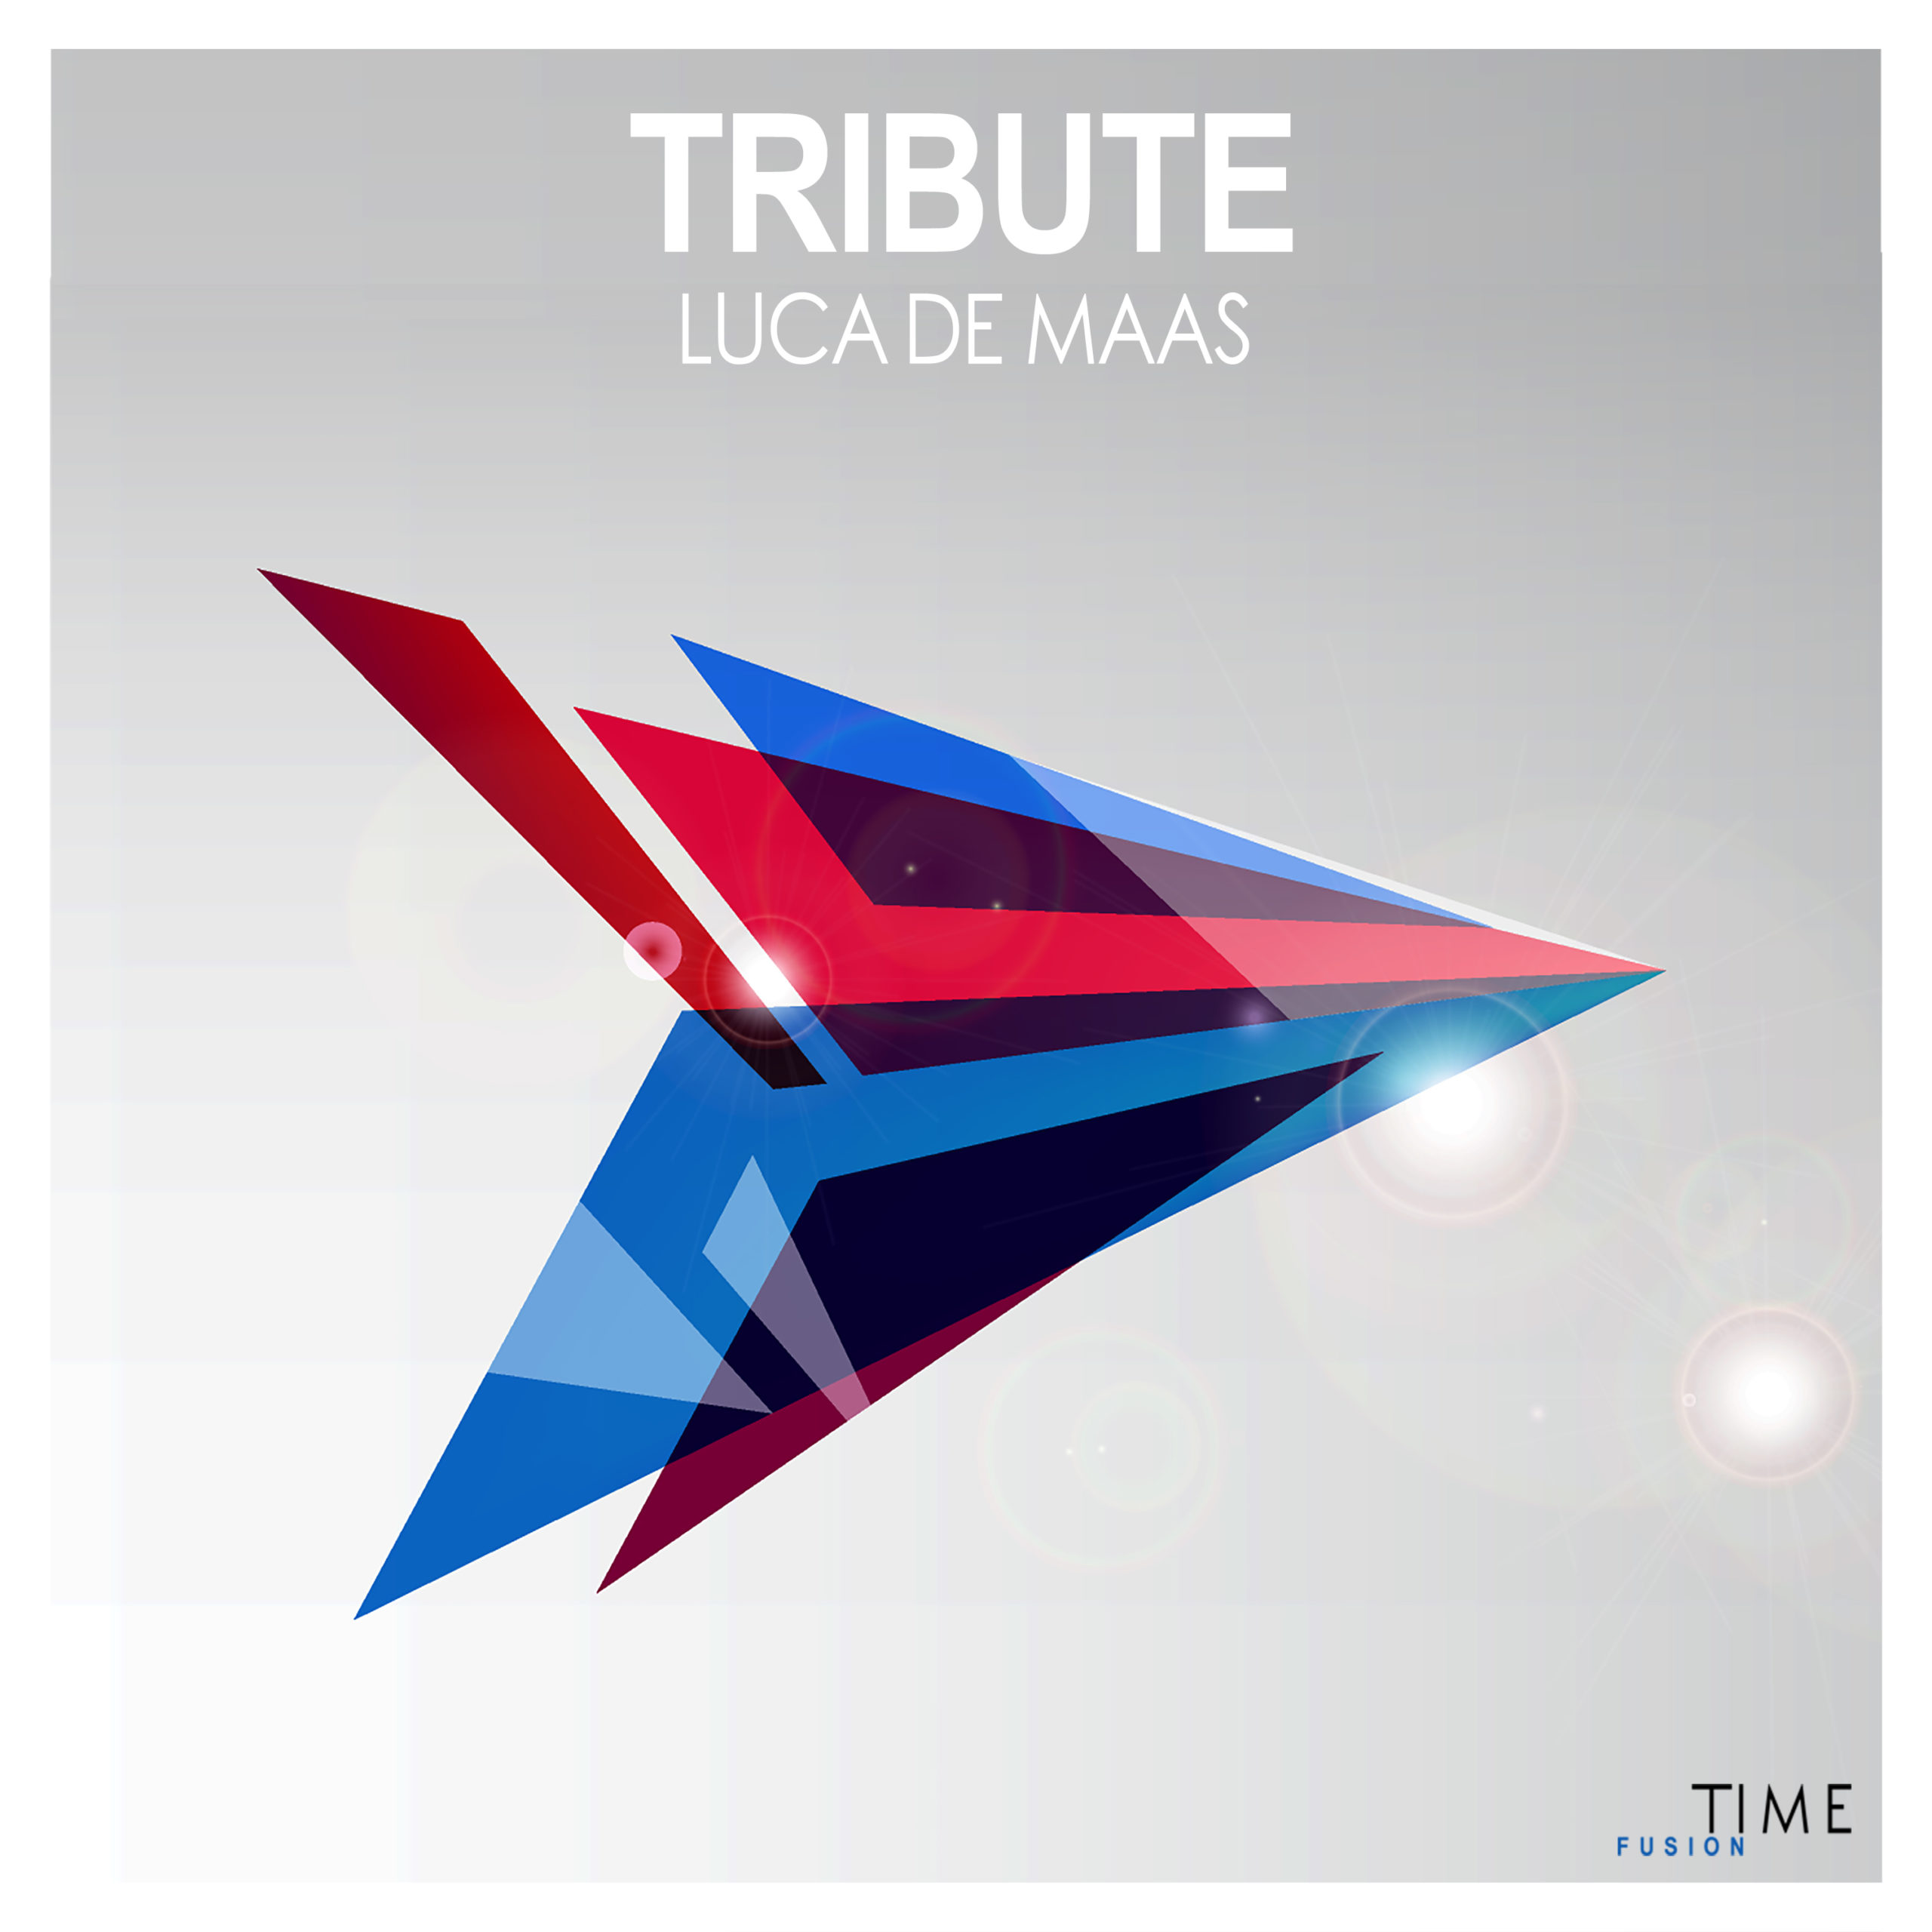 https://www.ultimate-house-records.com/wp-content/uploads/2020/01/tf131-Tribute-3000px-scaled.jpg